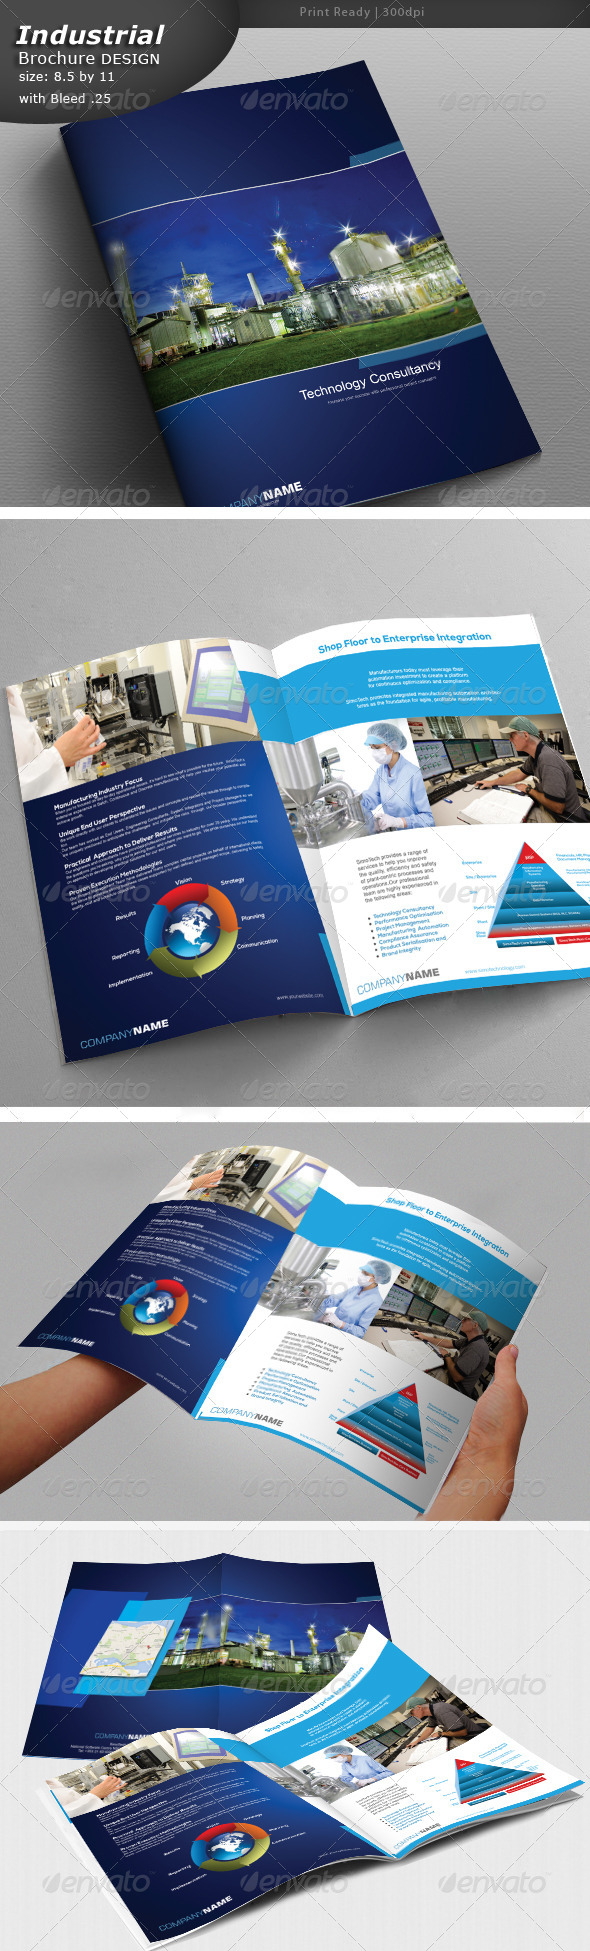 GraphicRiver Industrial Brochure Design 5329443